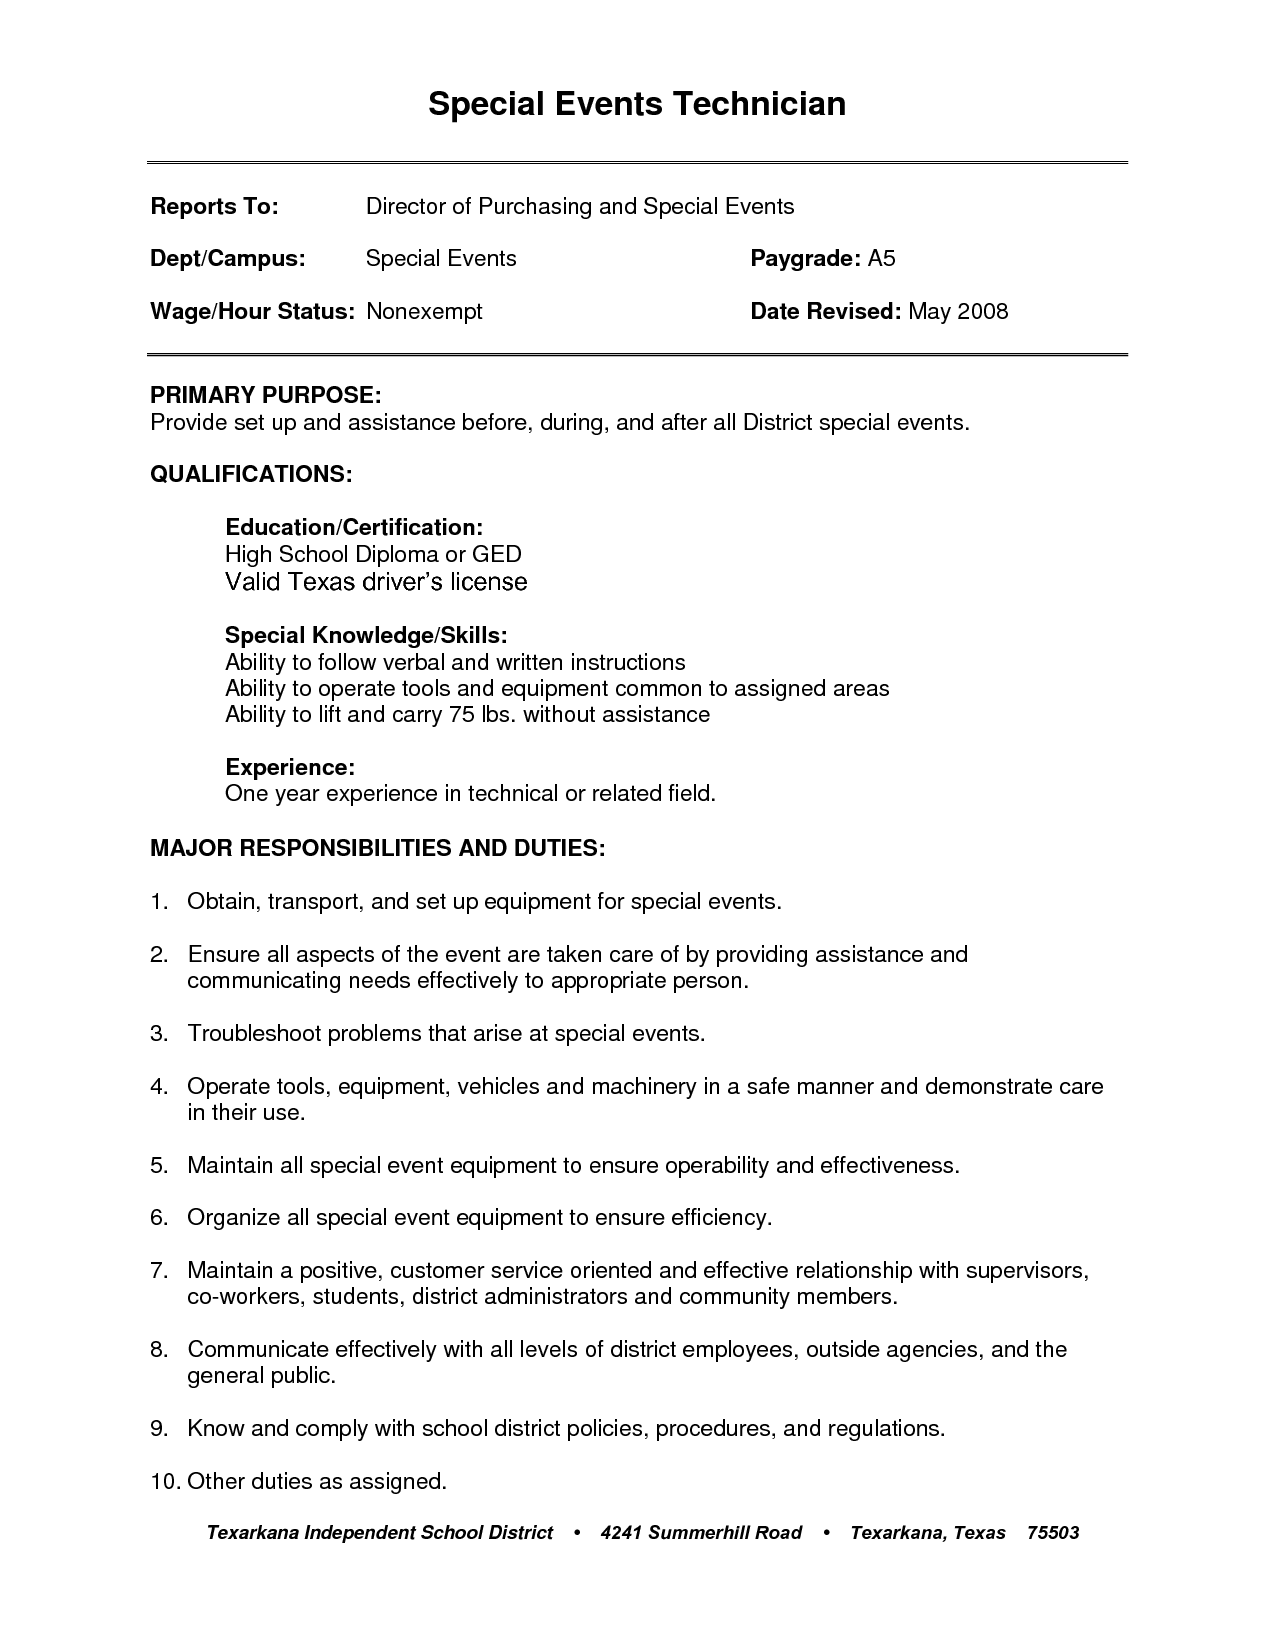 Resume For General Job Teen Objective Cover Skills Labor And Template  Special Skills On Resume